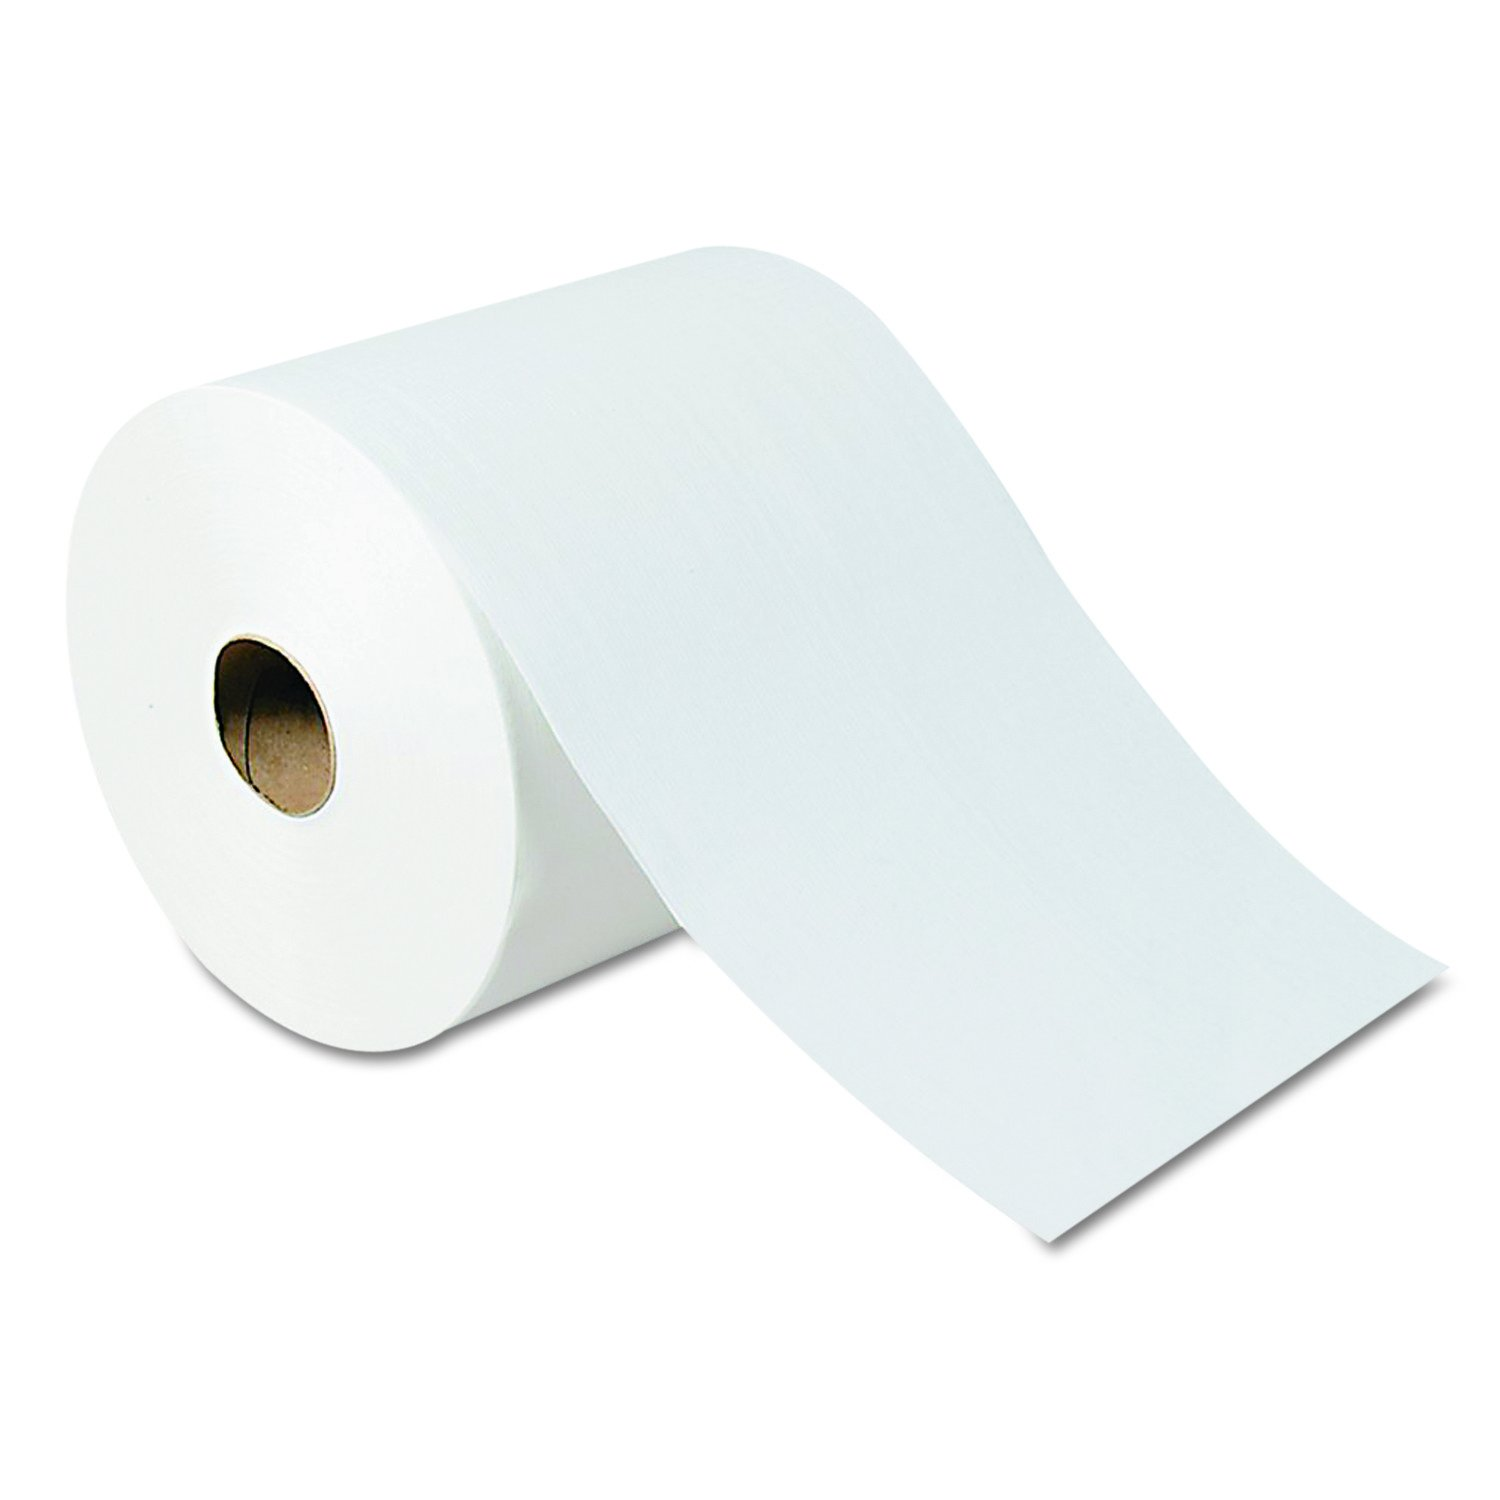 Pacific Blue Recycled Paper Towel Rolls